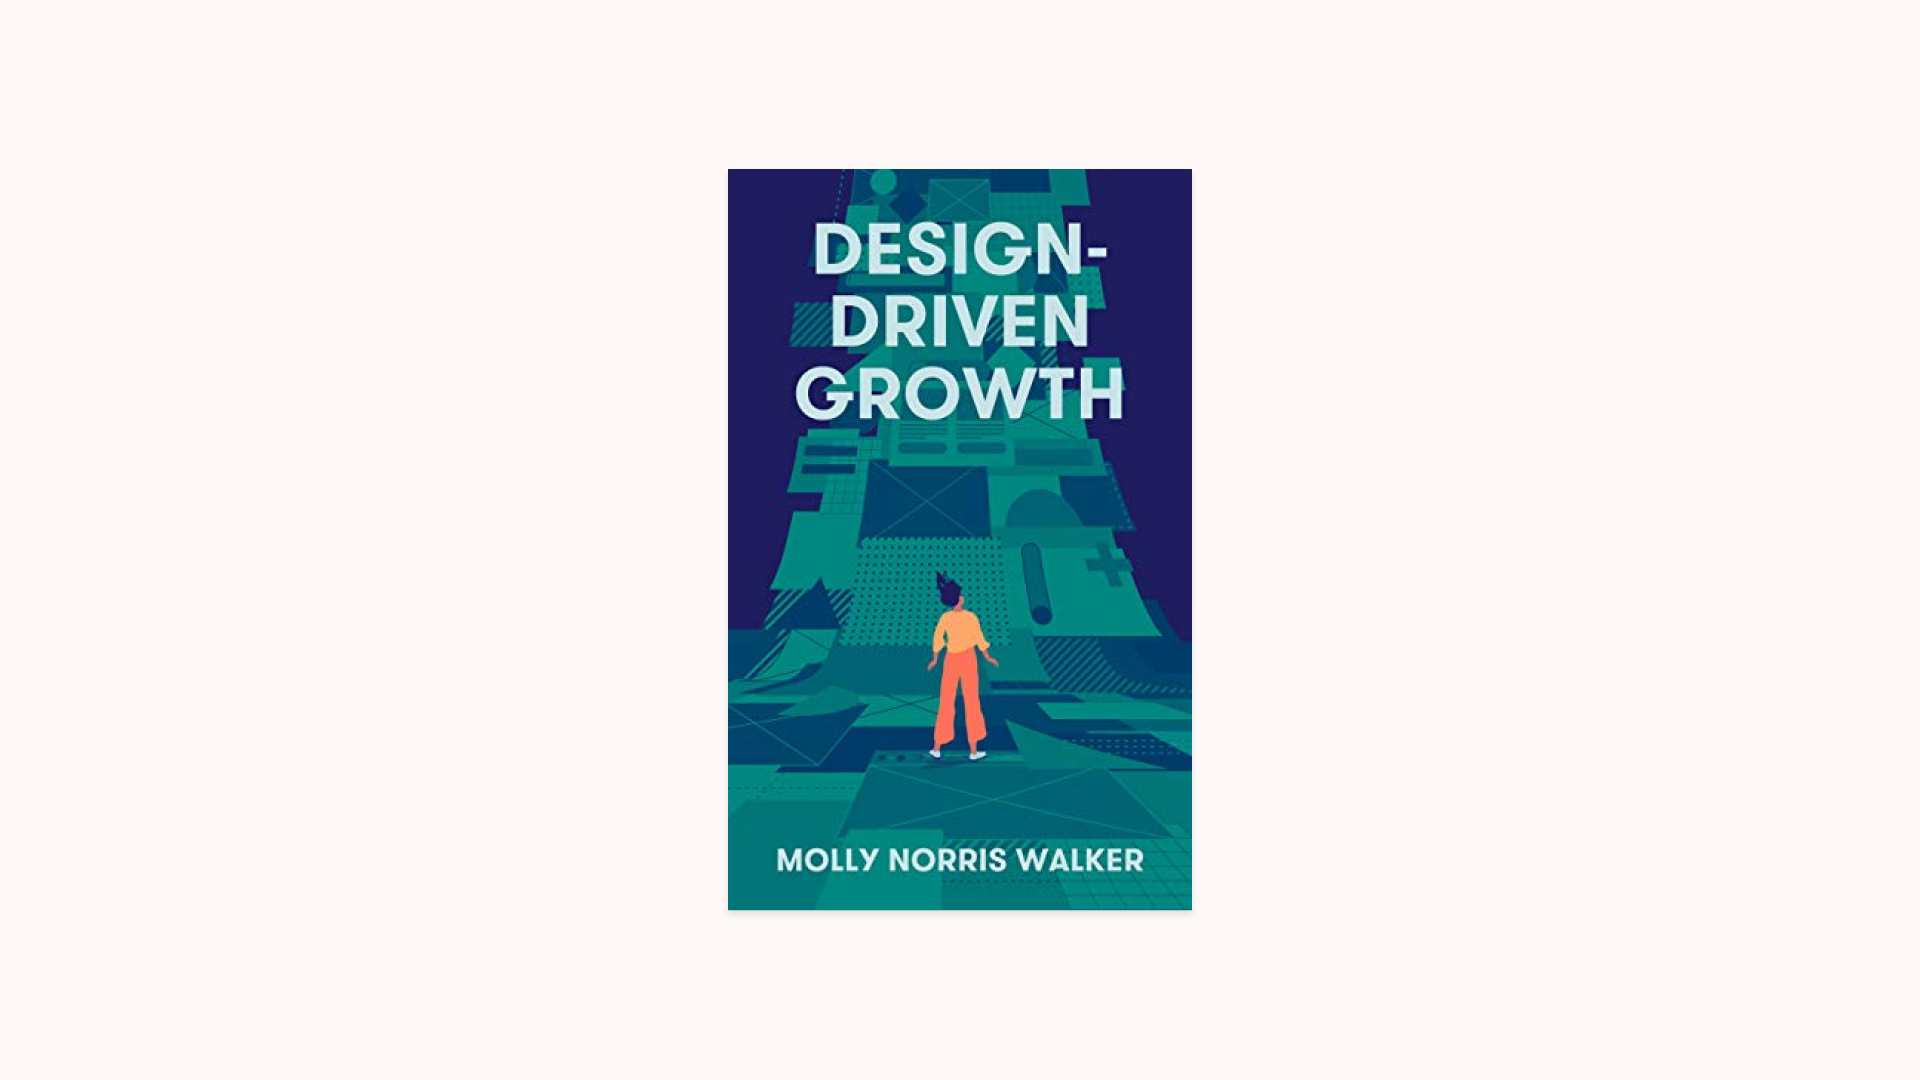 Front cover of the book Design-Driven Growth by Molly Norris Walker